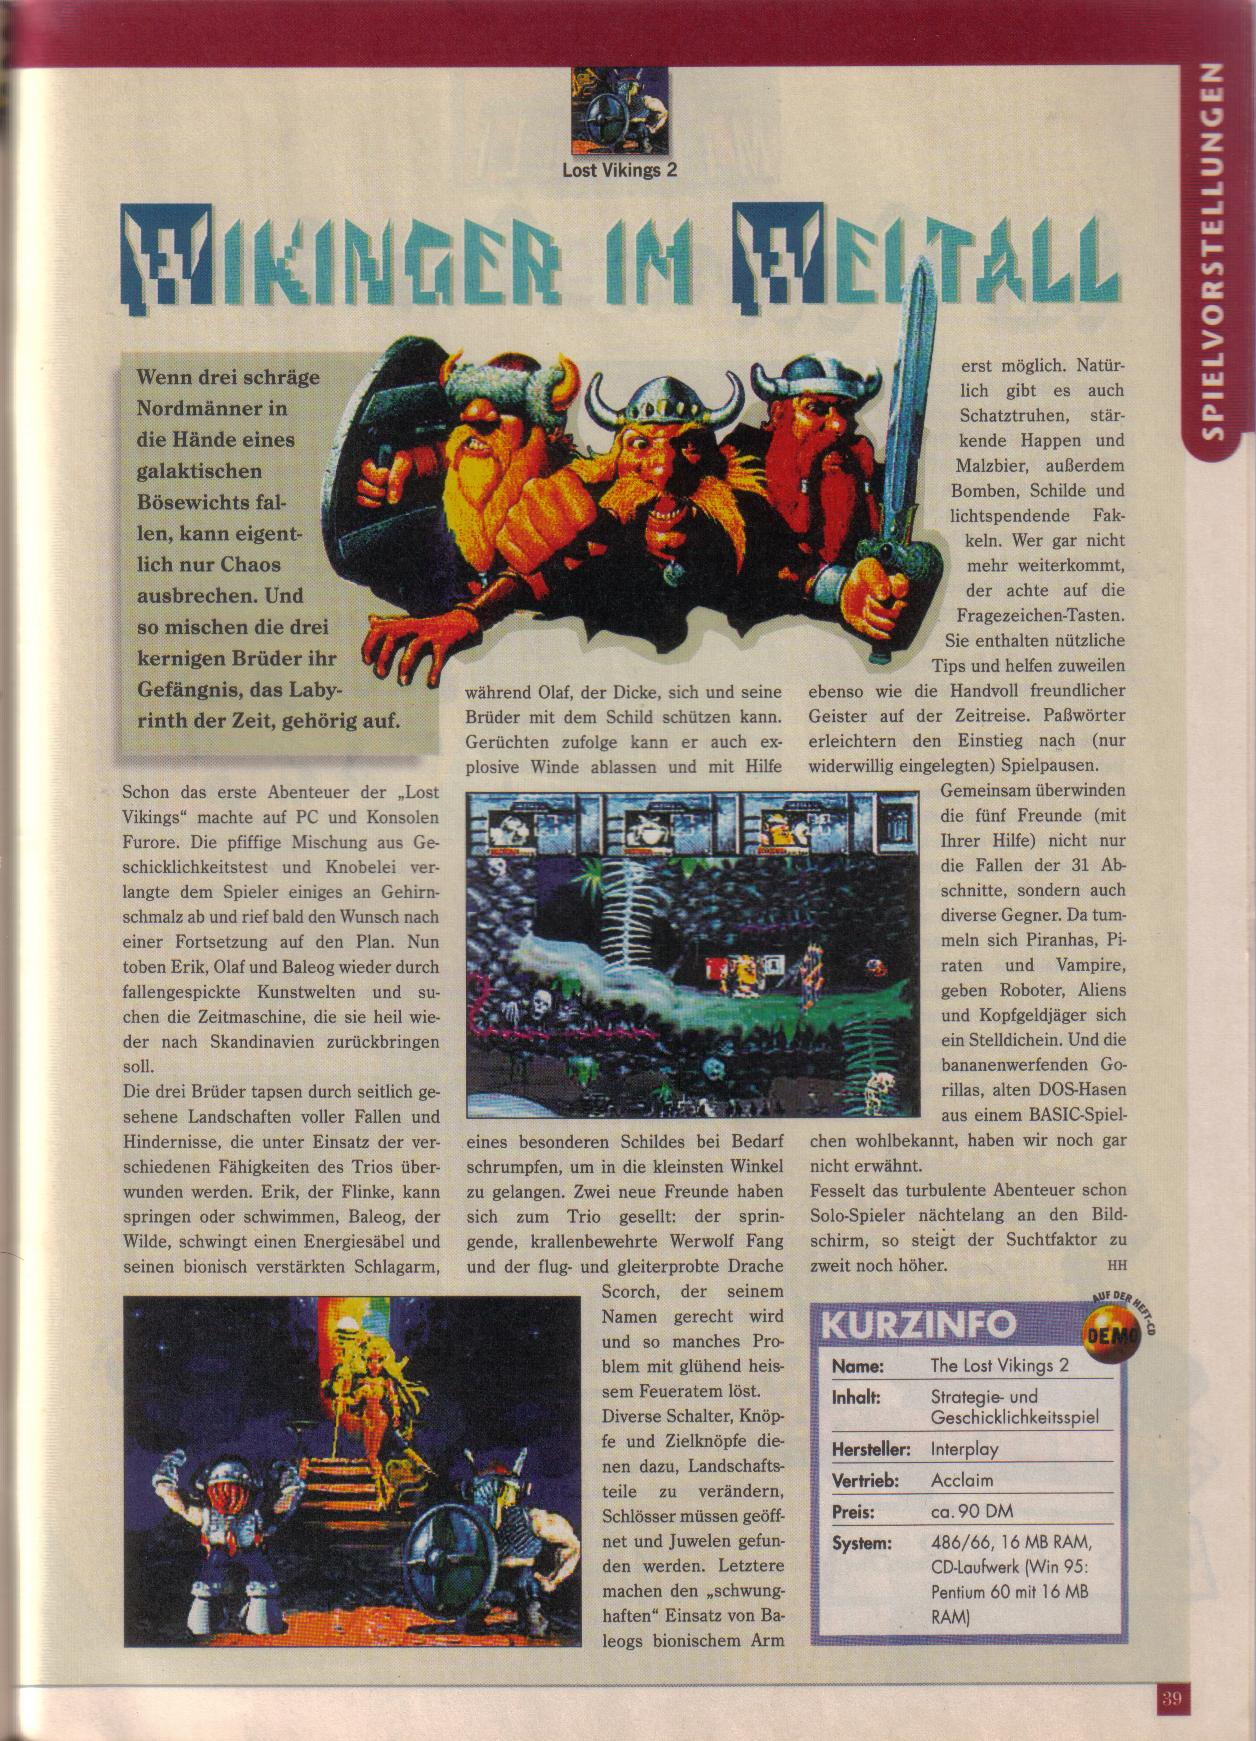 Dungeon Master II for PC (German, Best Seller Games) Page 39